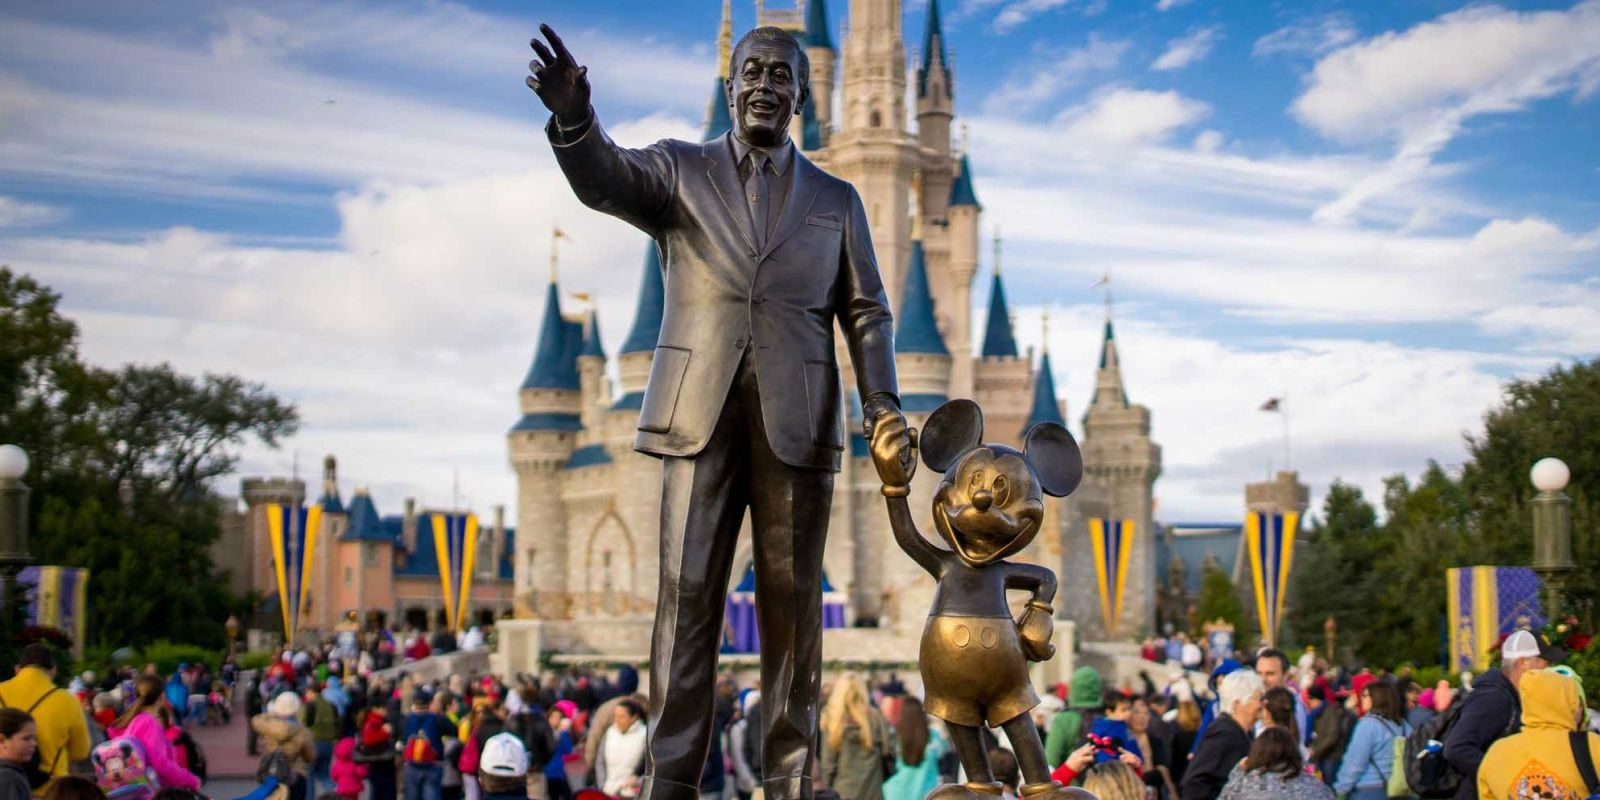 Disney Parks Introduces Affordable, Variable Pricing